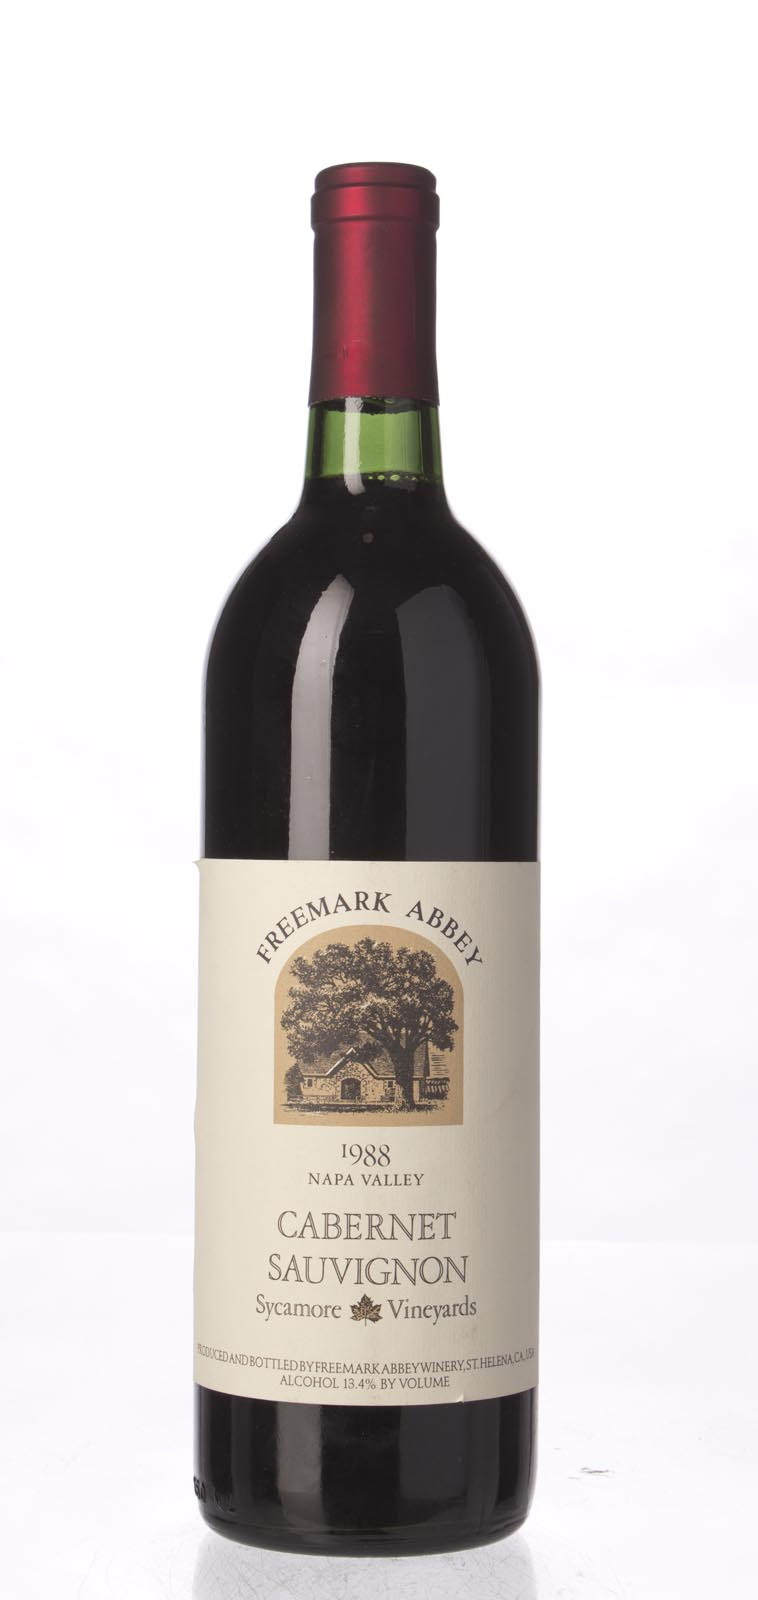 Freemark Abbey Cabernet Sauvignon Sycamore Vineyard 1988, 750mL () from The BPW - Merchants of rare and fine wines.